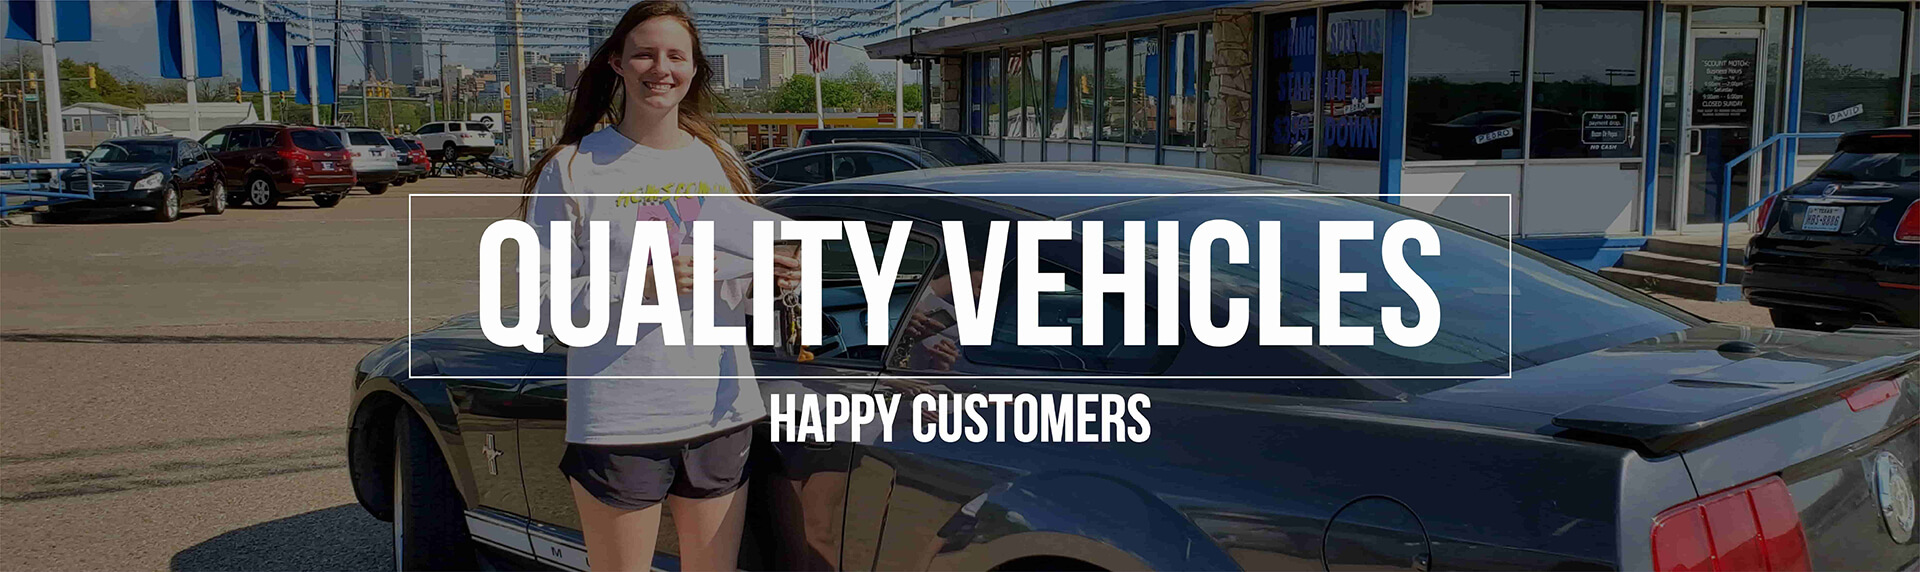 quality vehicles at discount motors